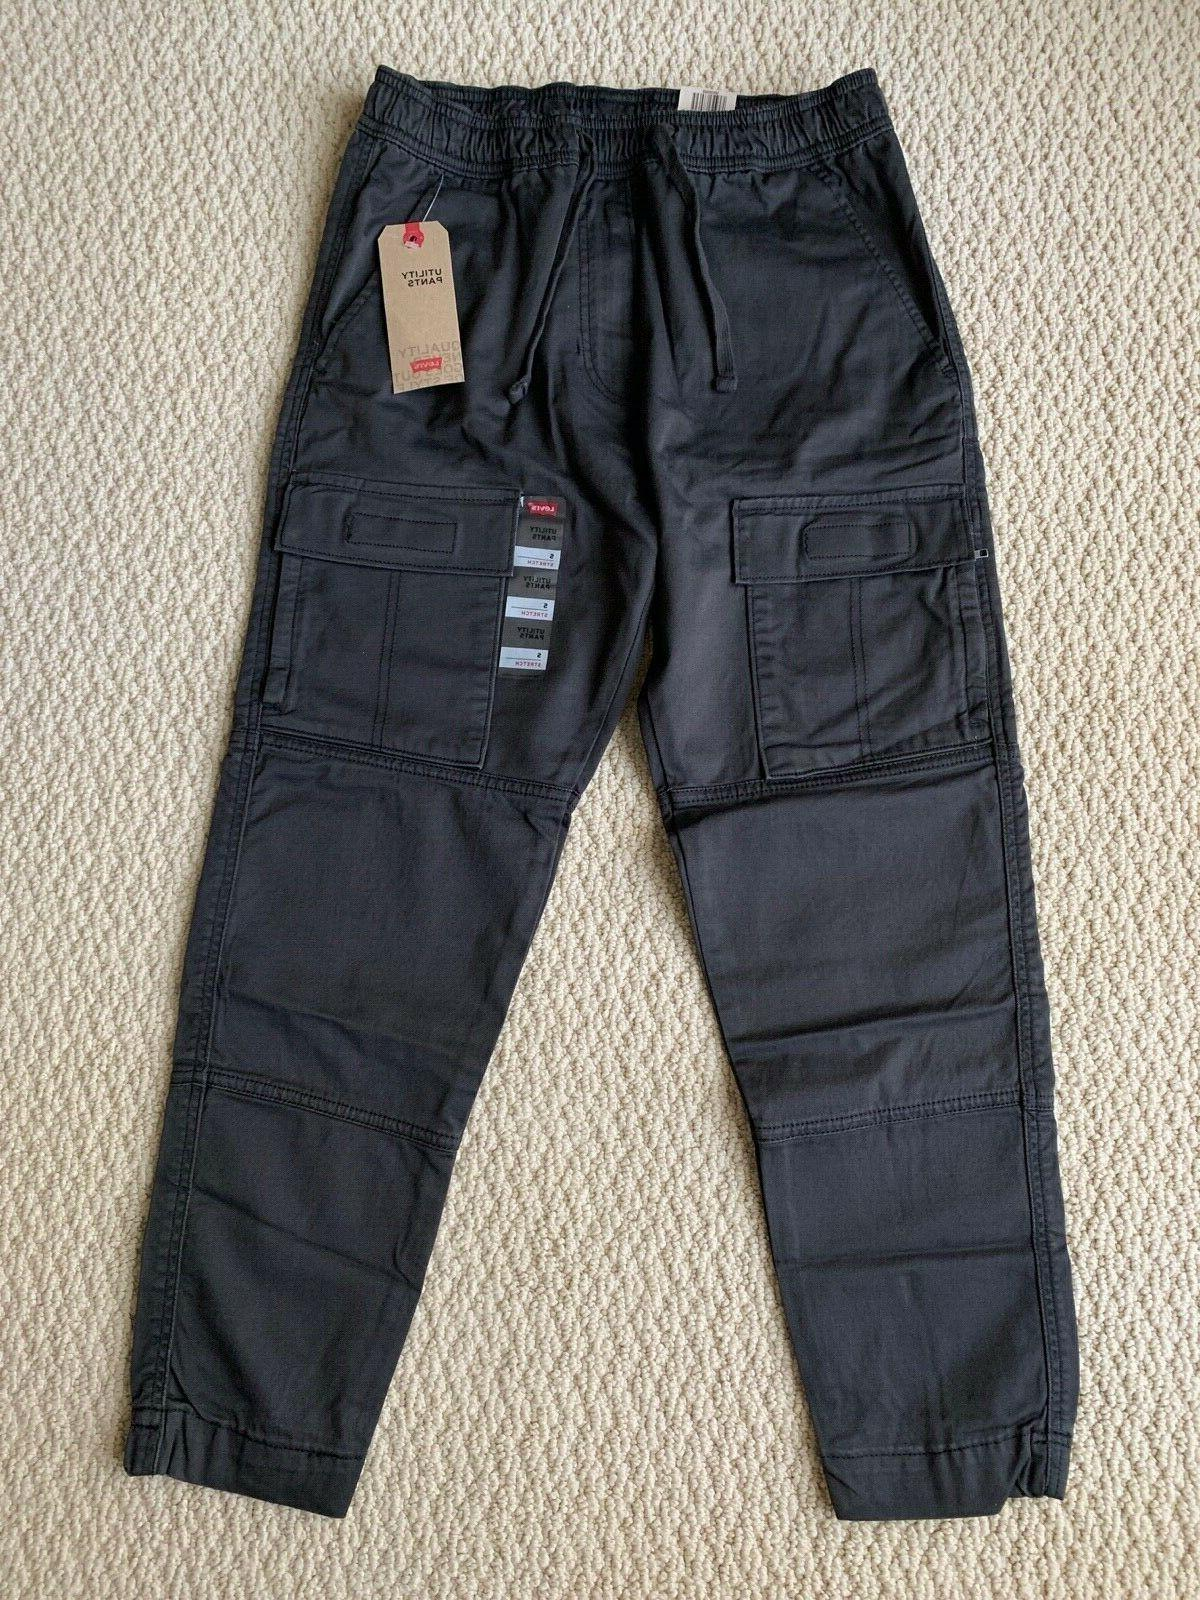 nwt men s levi s charcoal utility